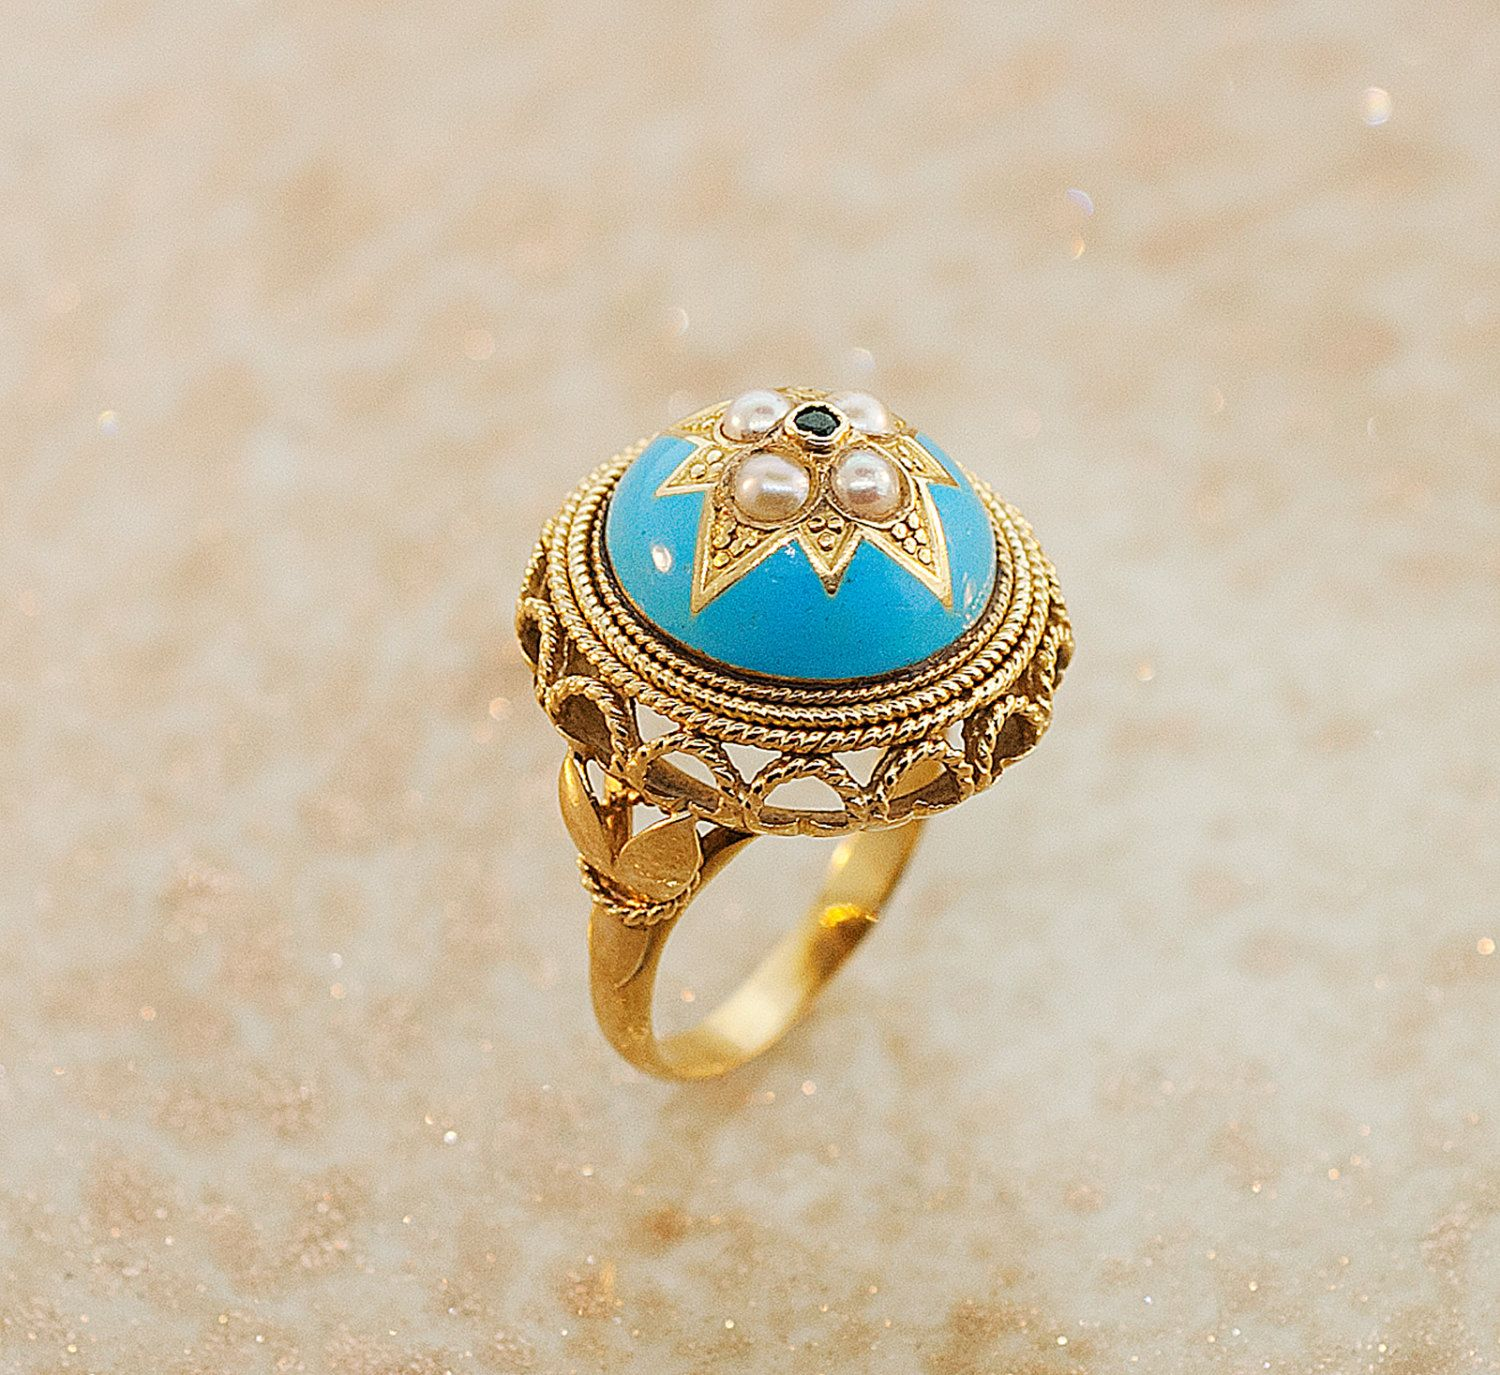 Antique Enamel Ring w/ Gold, Emerald and Pearls